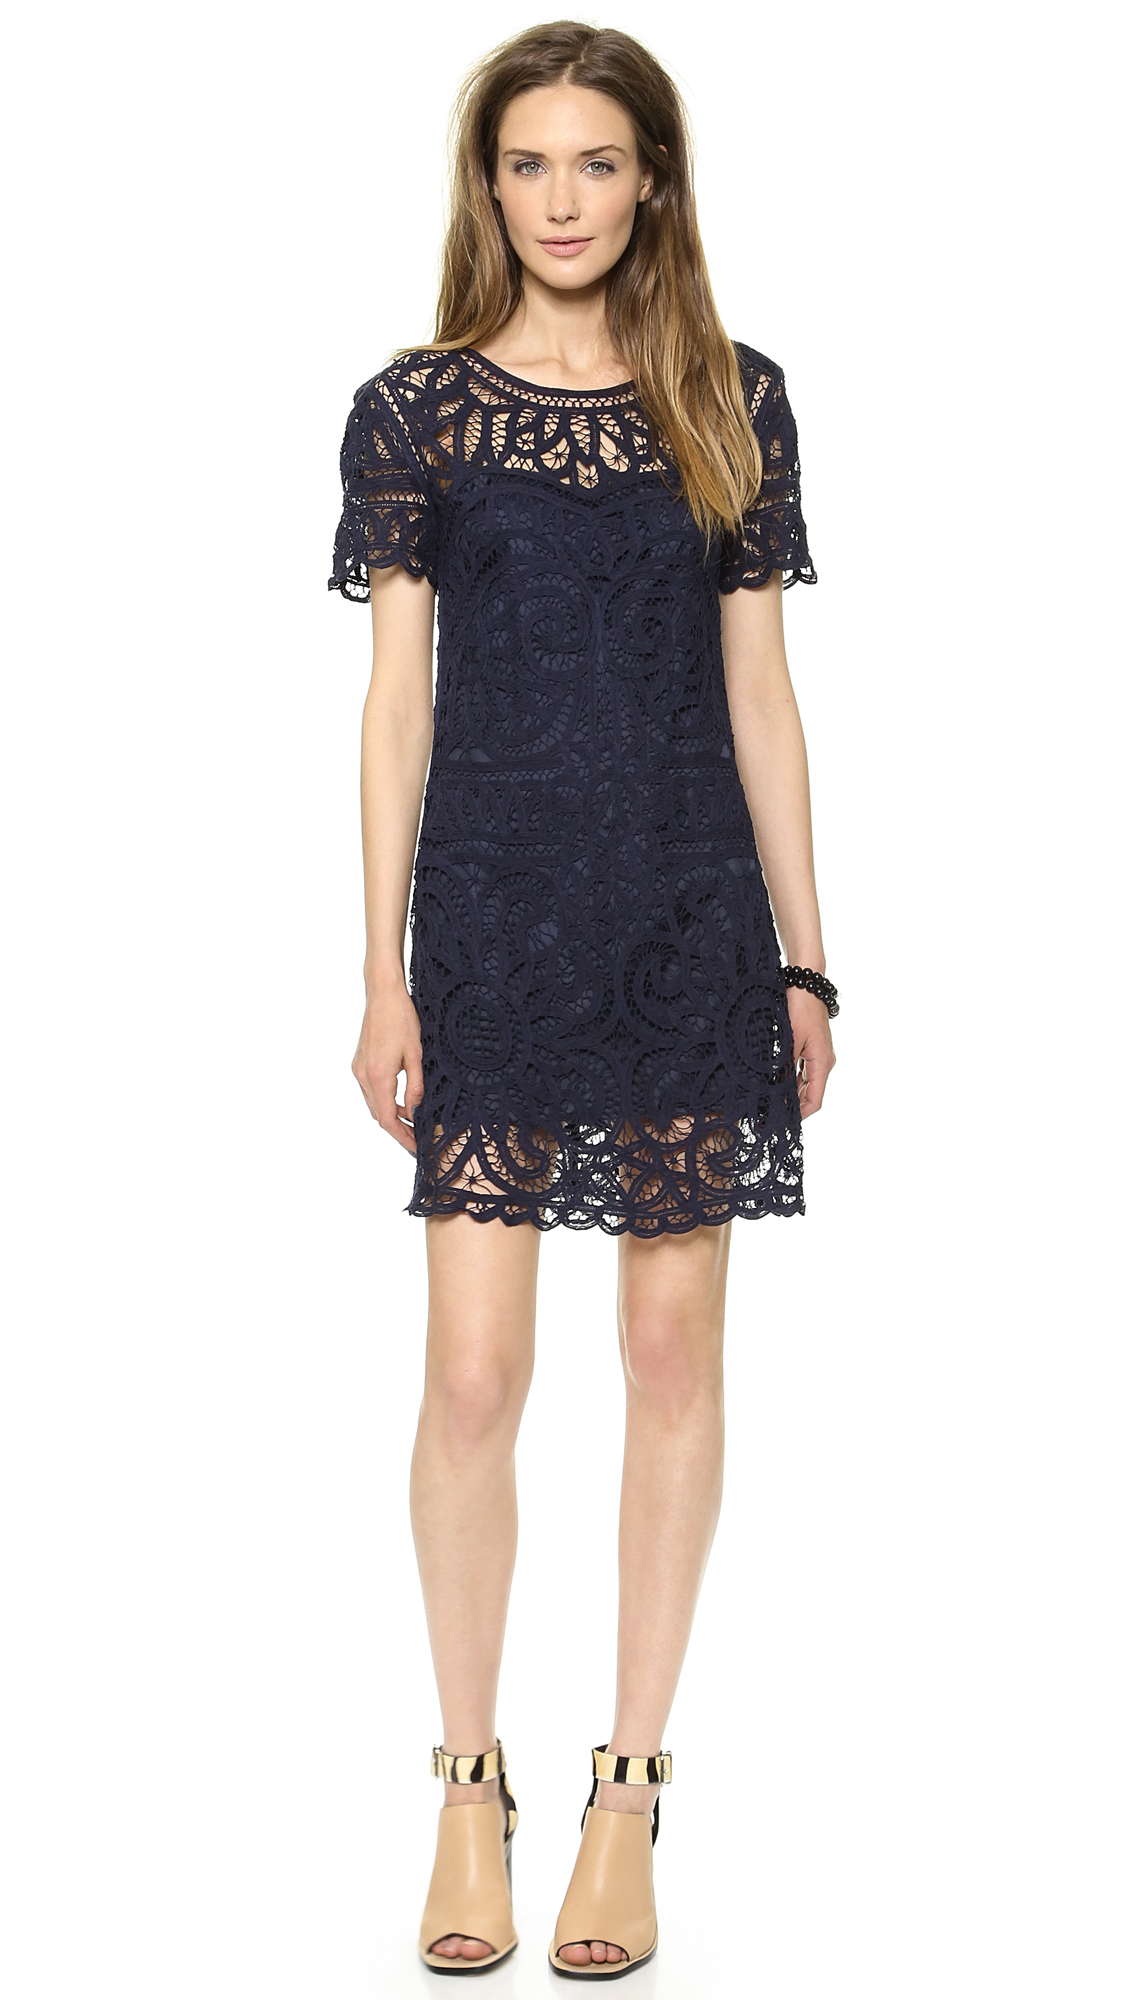 Shop for short sleeve dresses and other fashion products at ShapeShop. Browse our fashion selections and save today.